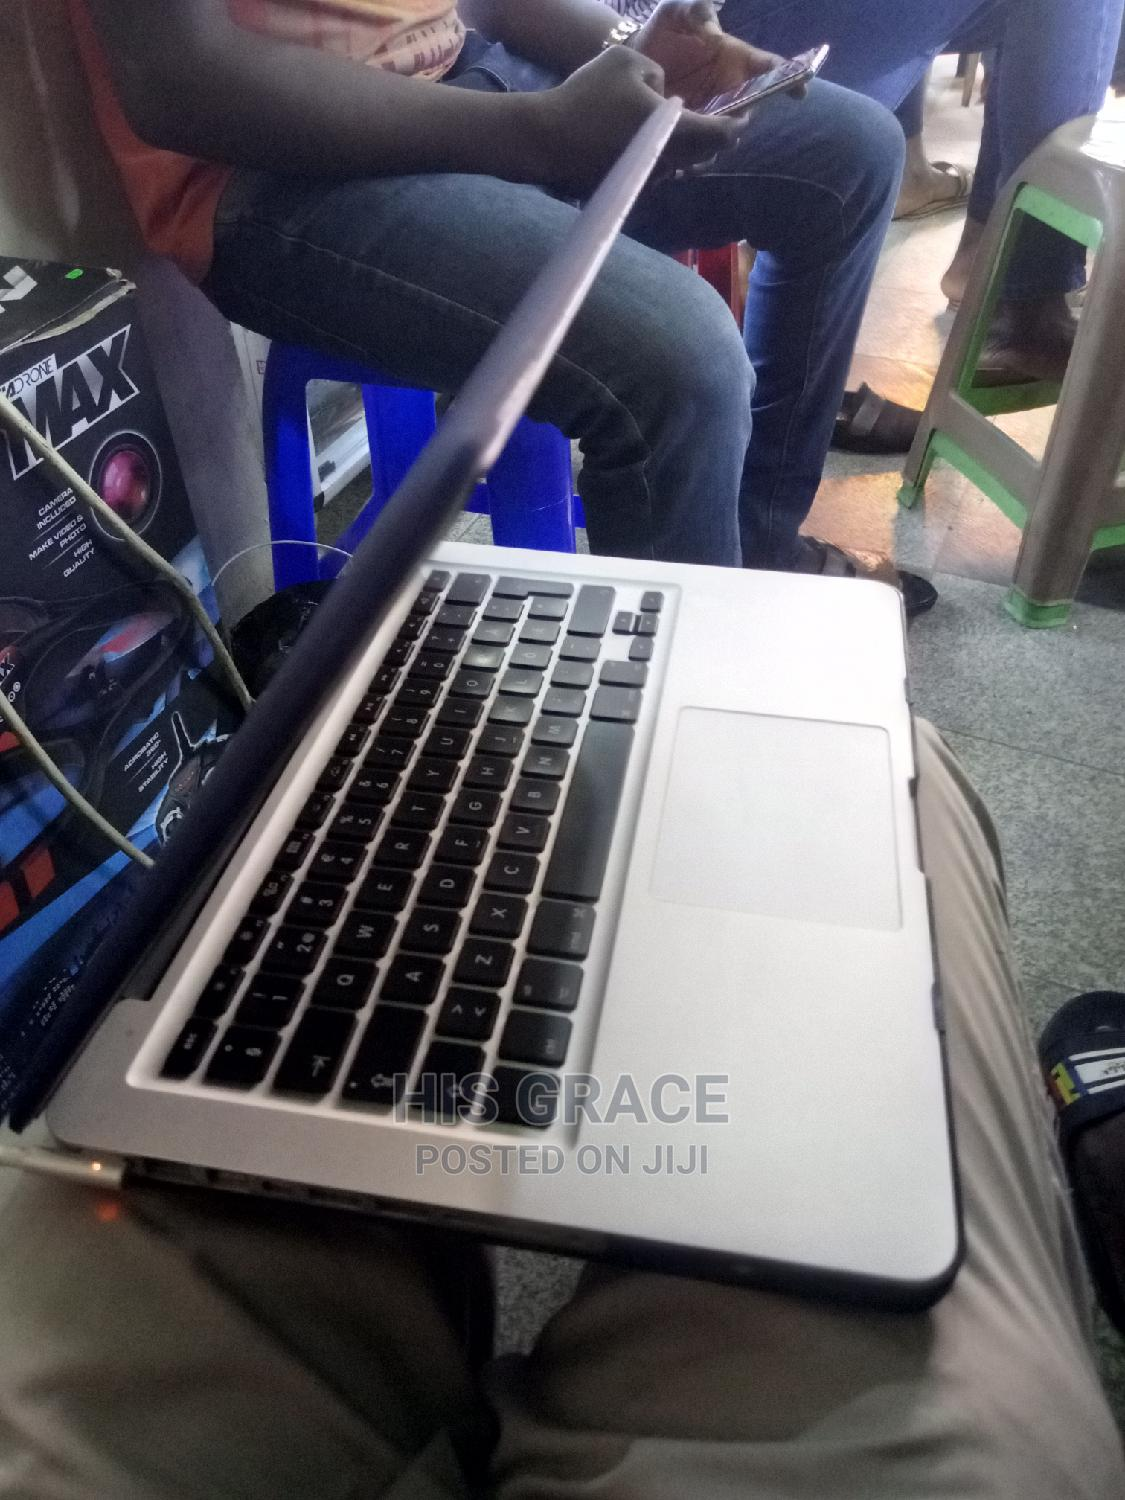 Laptop Apple MacBook Pro 2012 8GB Intel Core I5 HDD 500GB | Laptops & Computers for sale in Ikeja, Lagos State, Nigeria